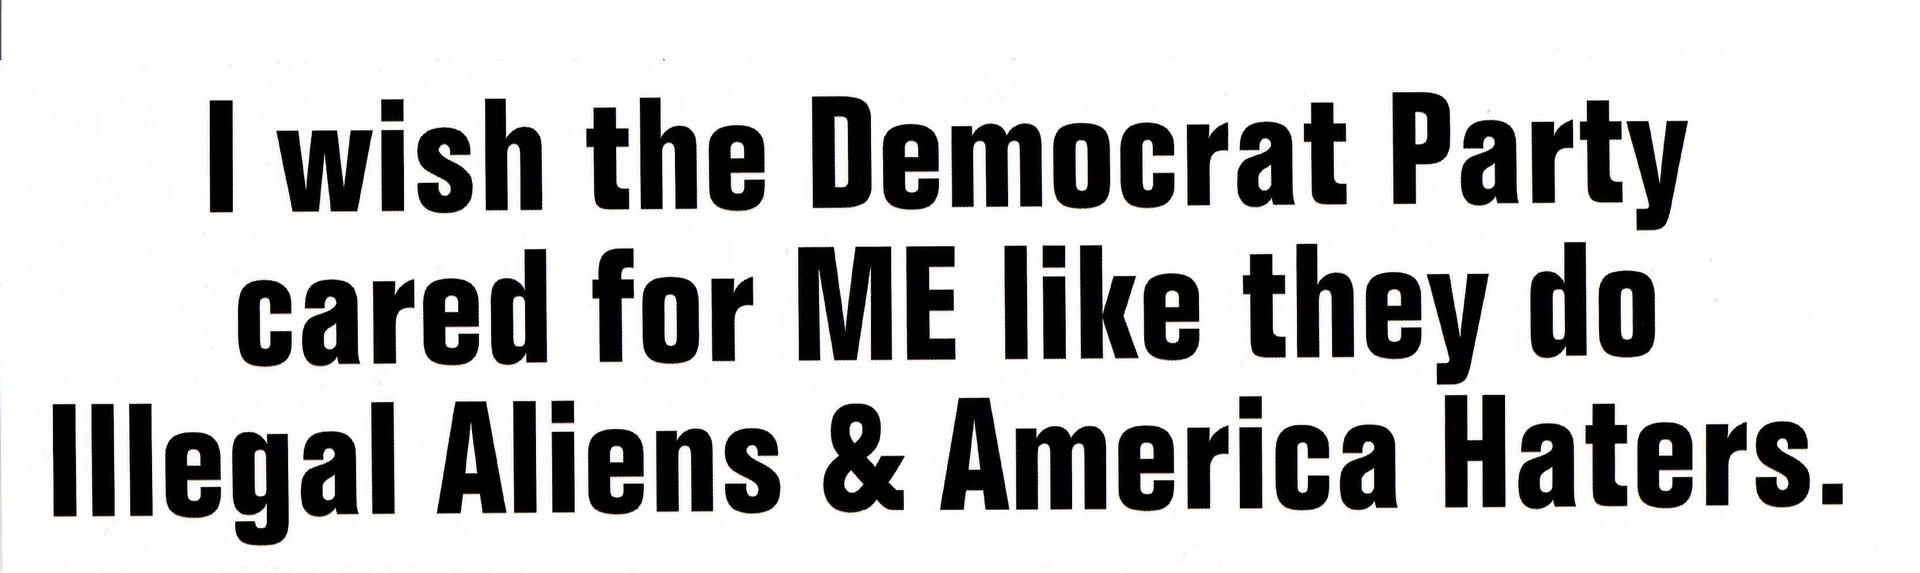 I Wish the Democratic Party